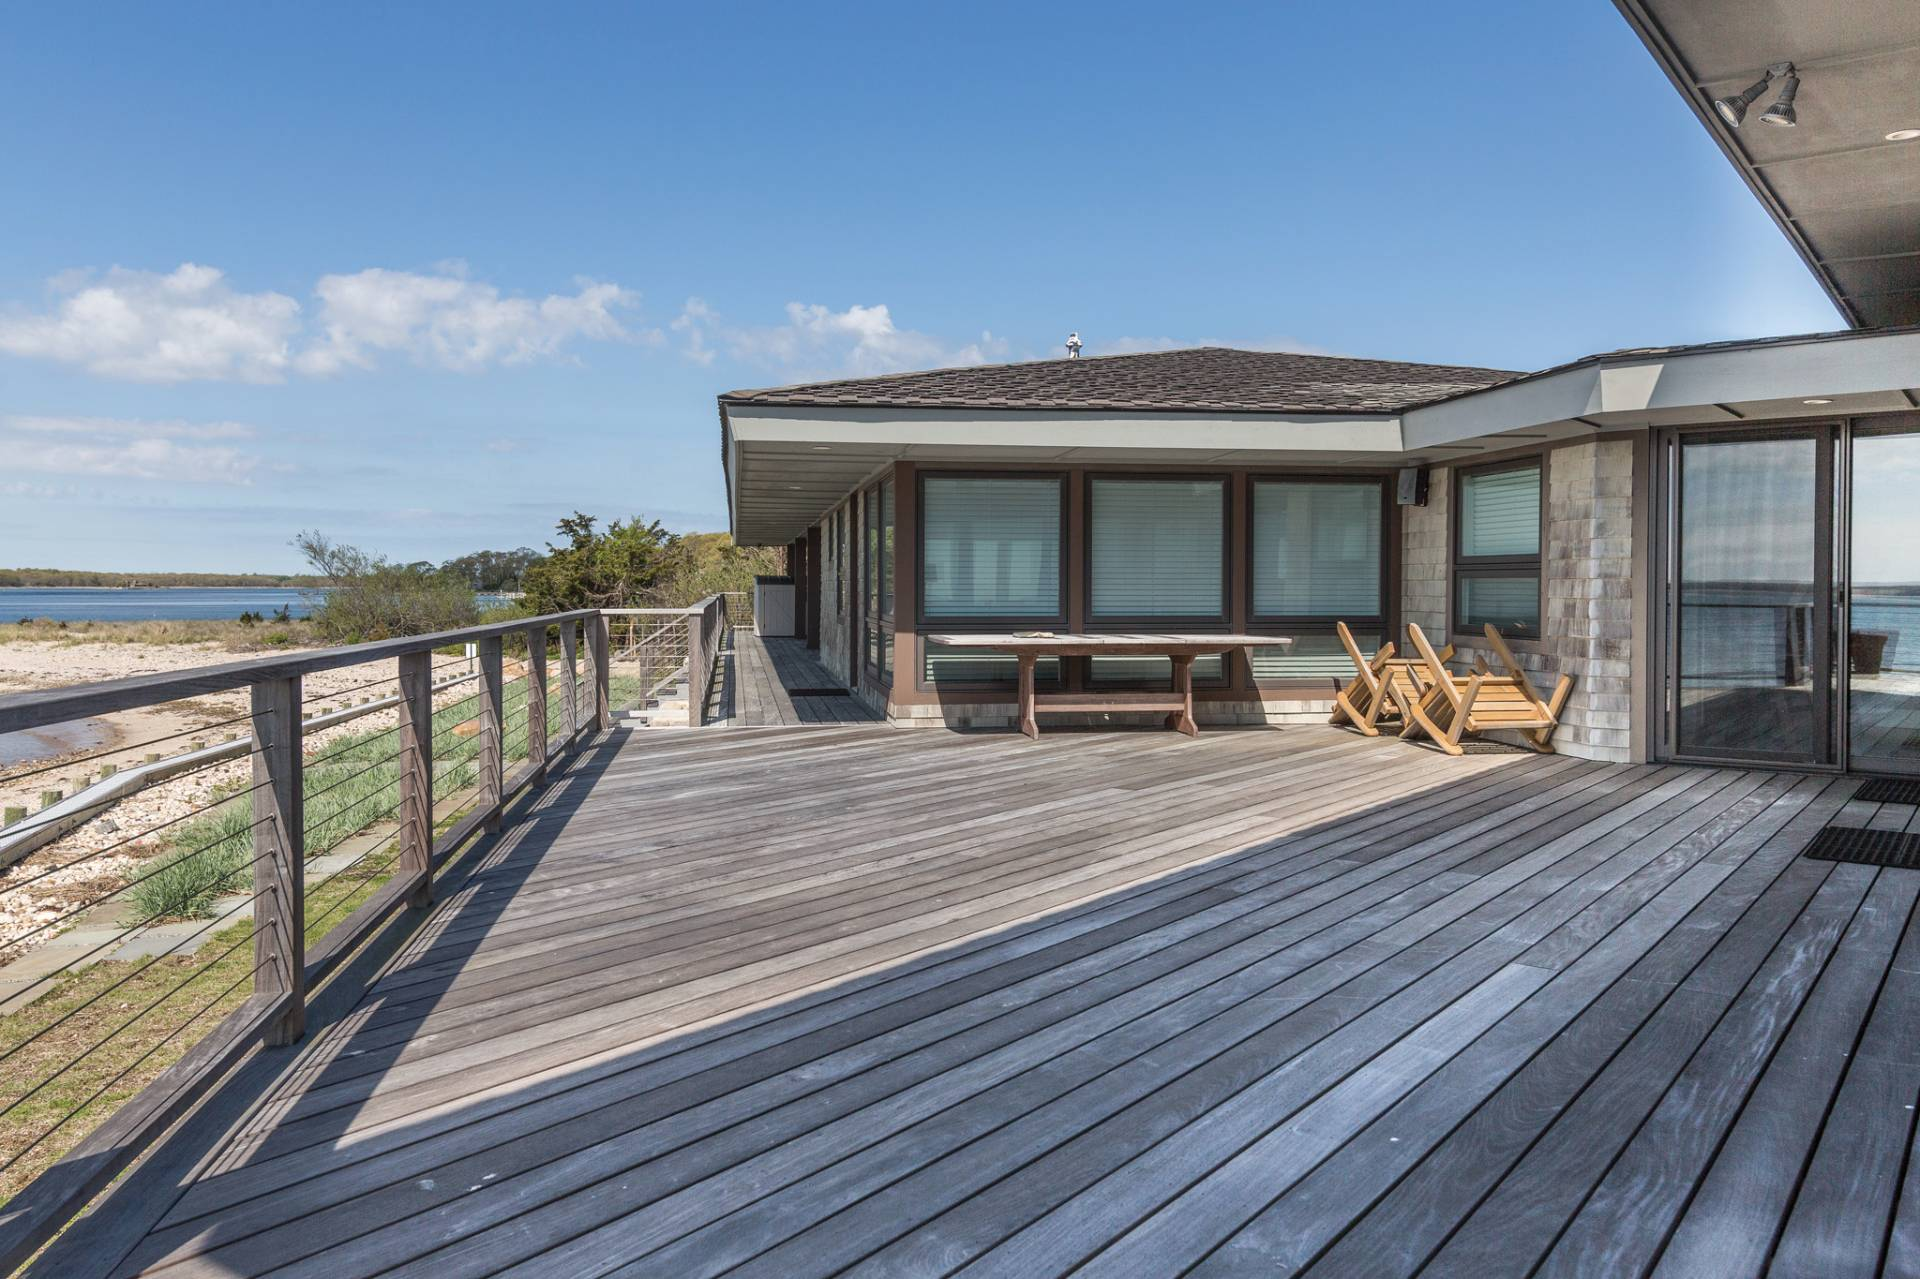 Additional photo for property listing at Shelter Island Mid Century Modern Beach House 6 Club Drive,  Shelter Island, New York